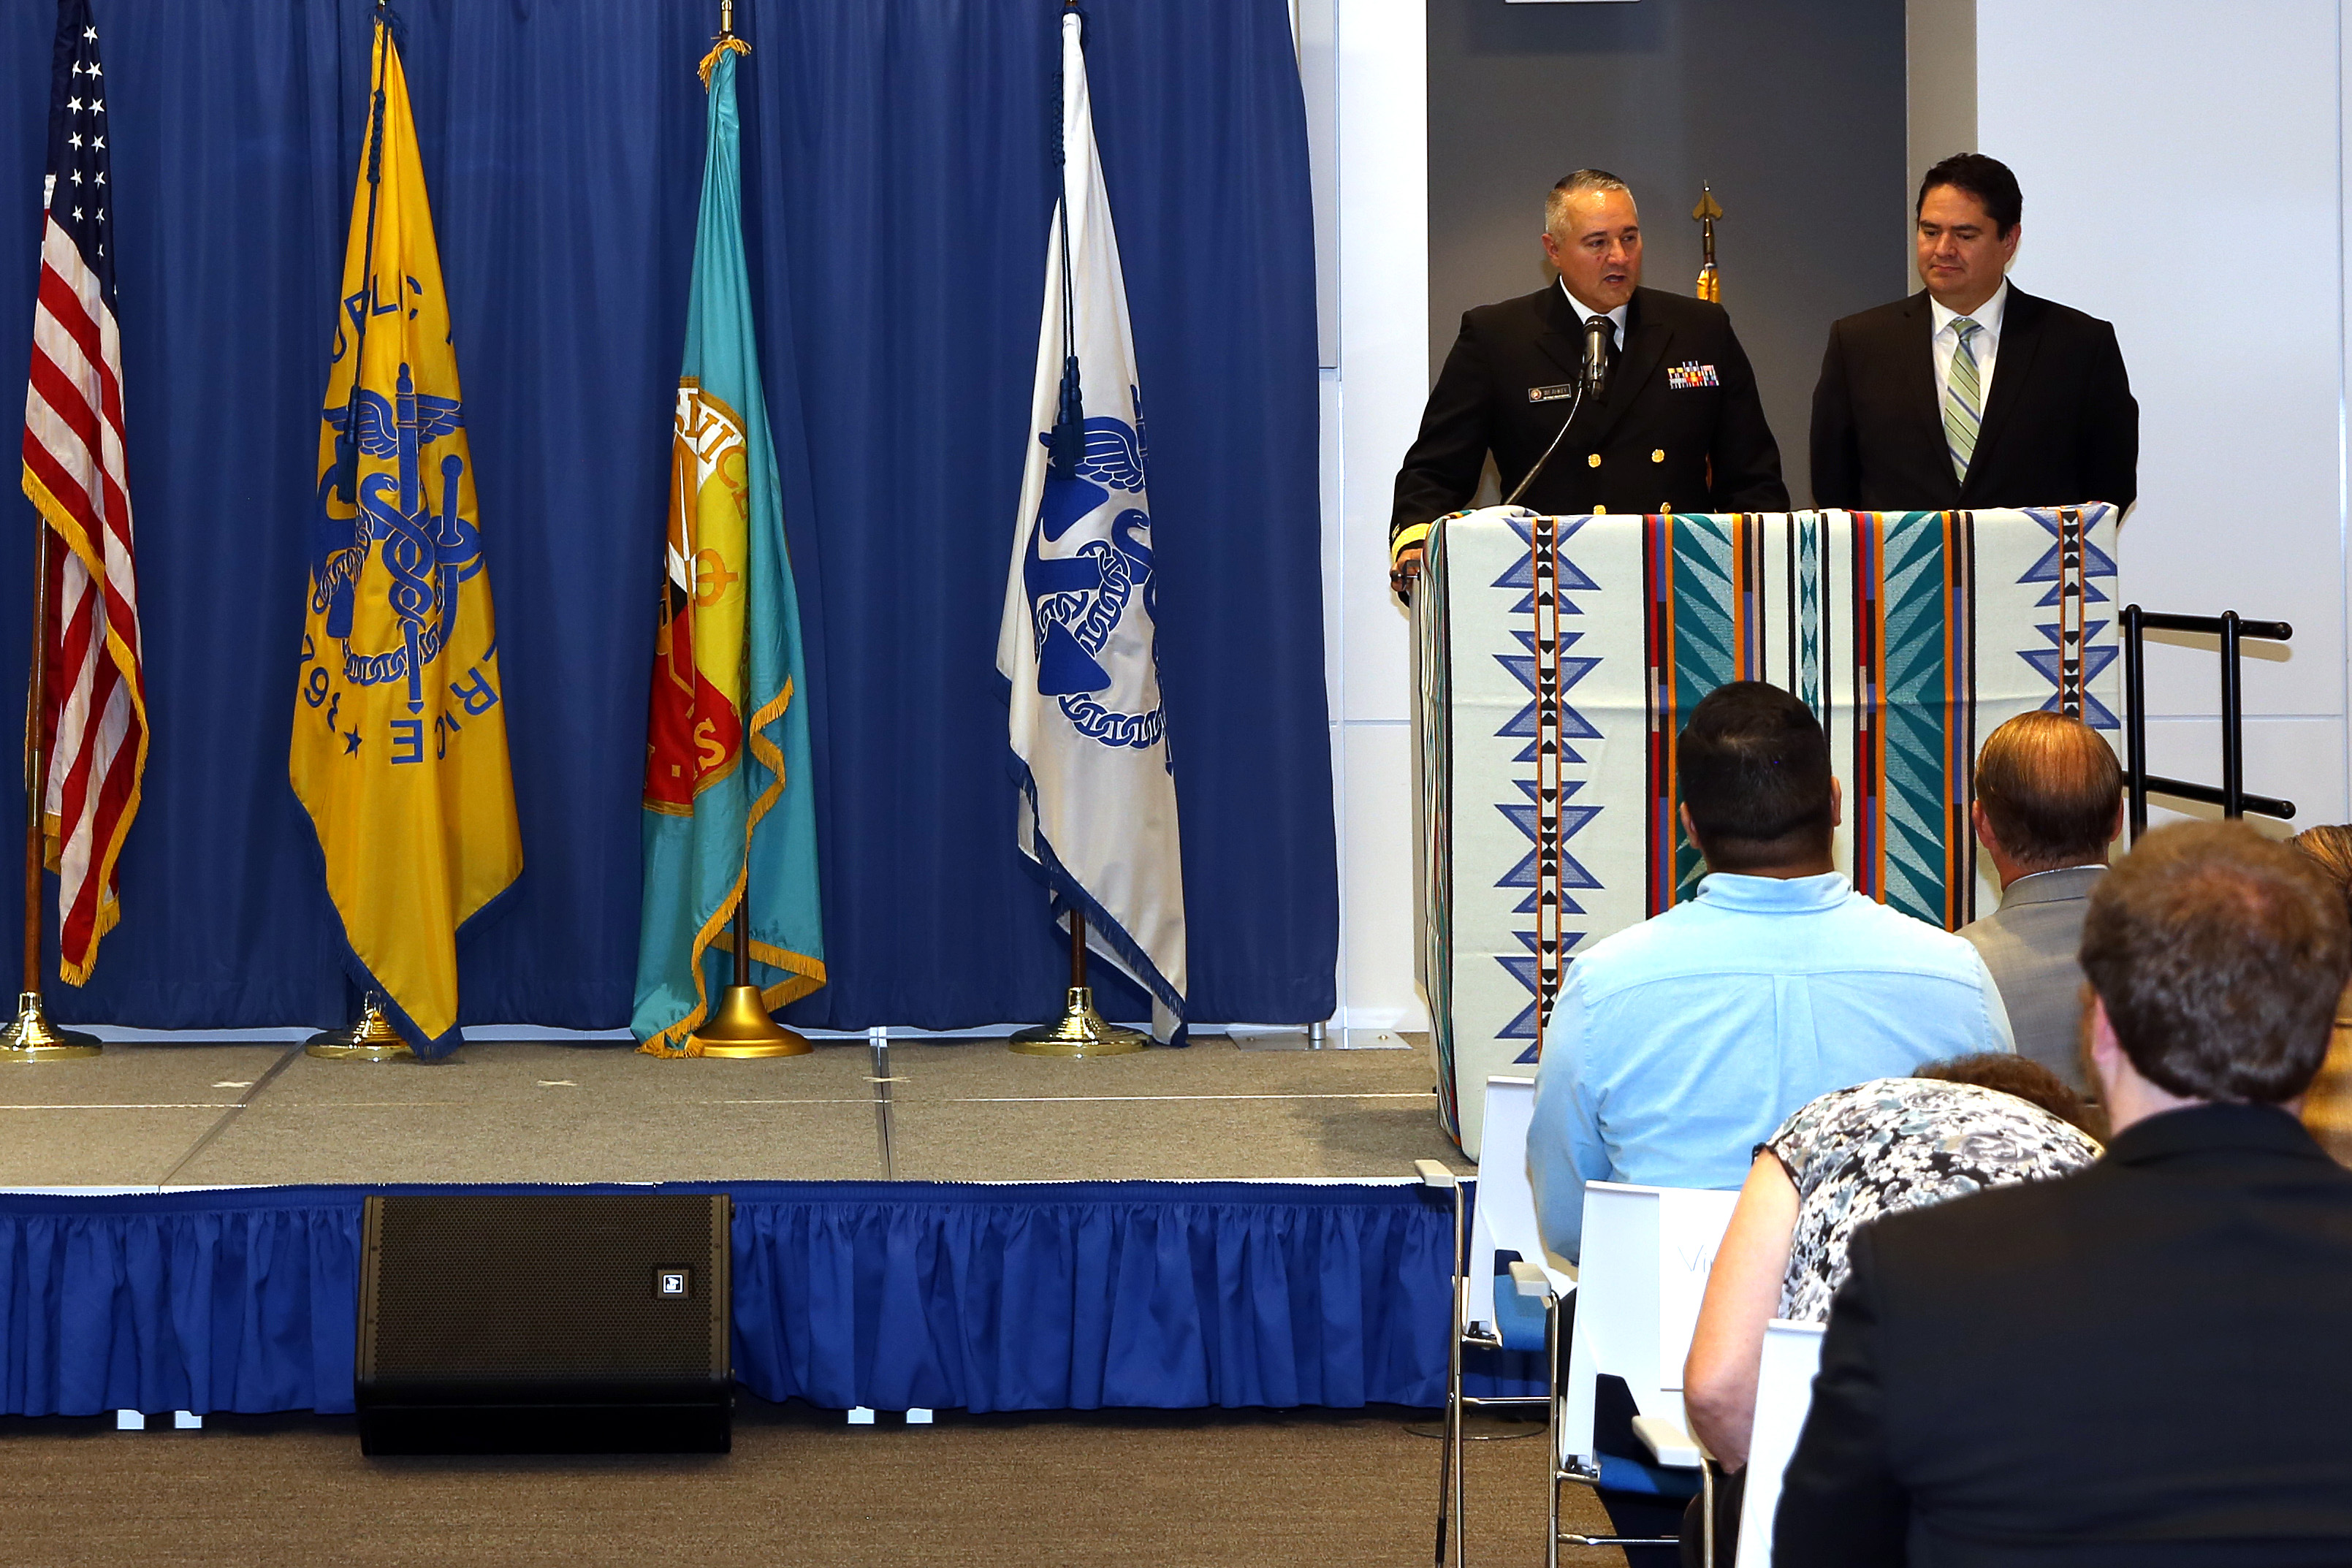 Closing Remarks - RADM Michael Weahkee and MC Ben Smith